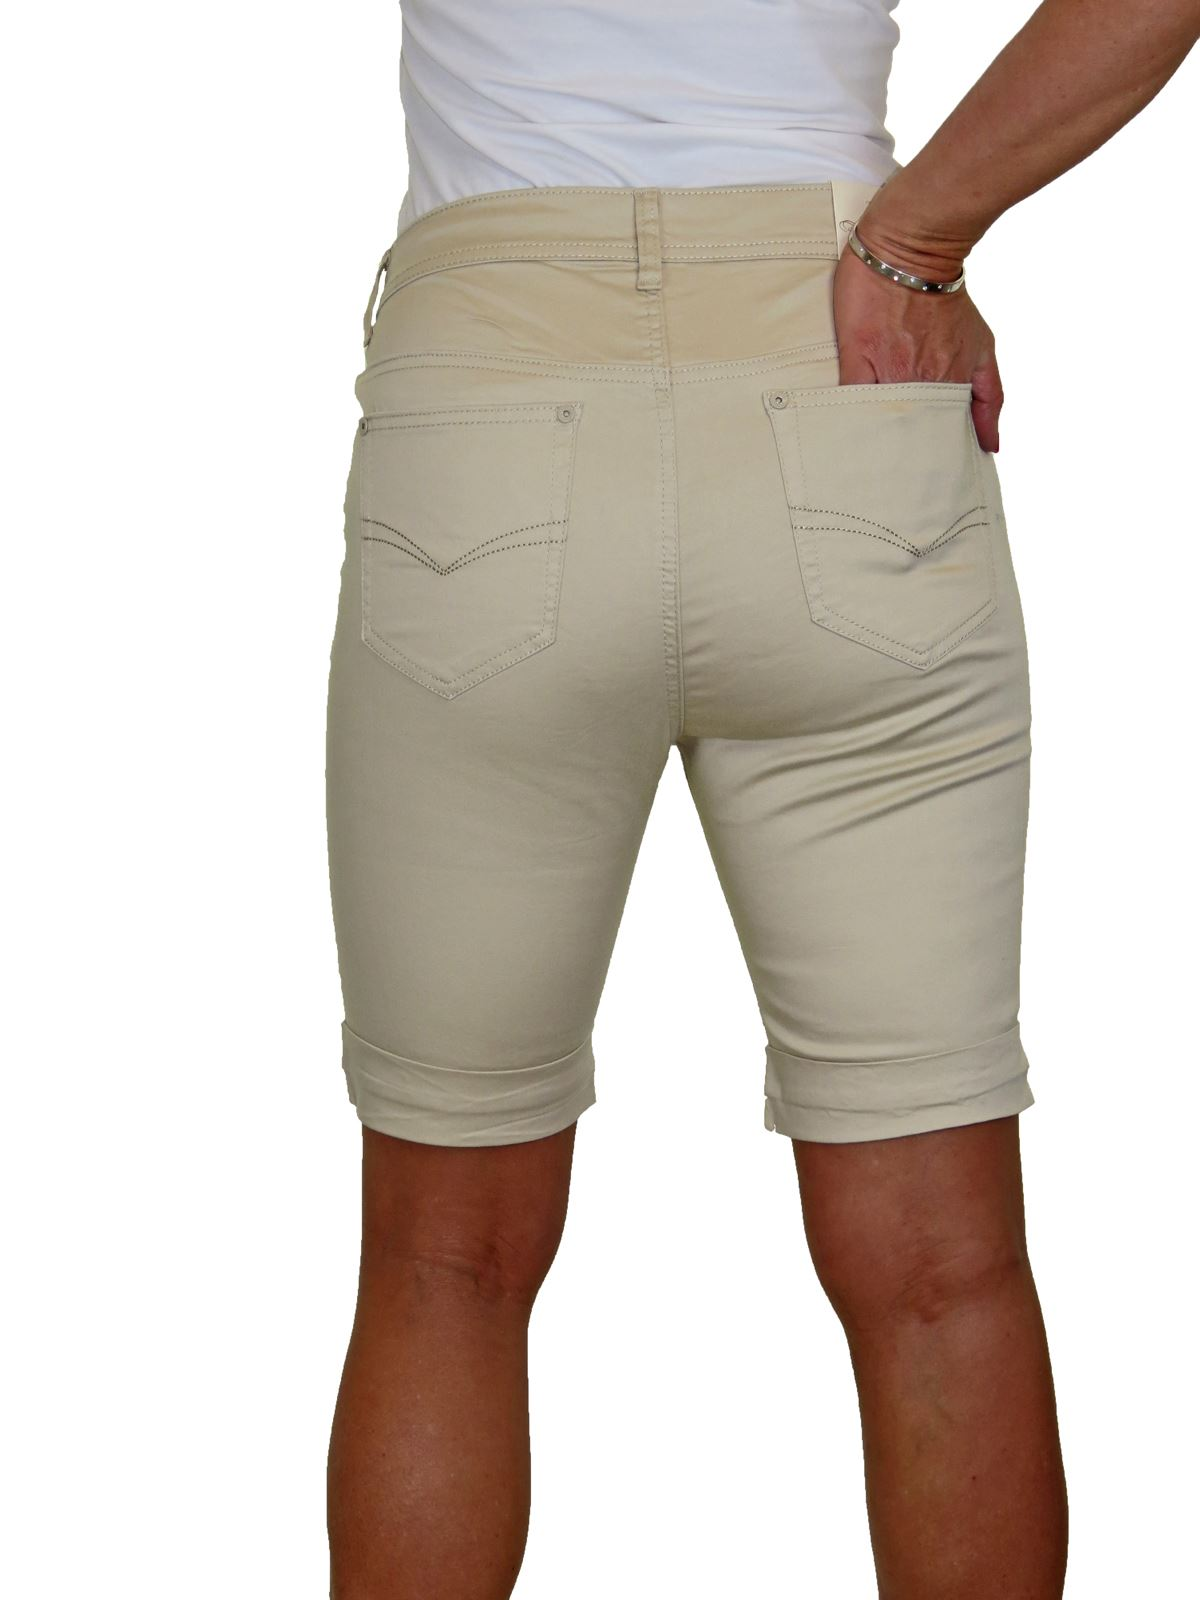 Ladies-Stretch-Stretch-Plus-Size-Jeans-Style-Shorts-Chino-Sheen-14-24 thumbnail 4